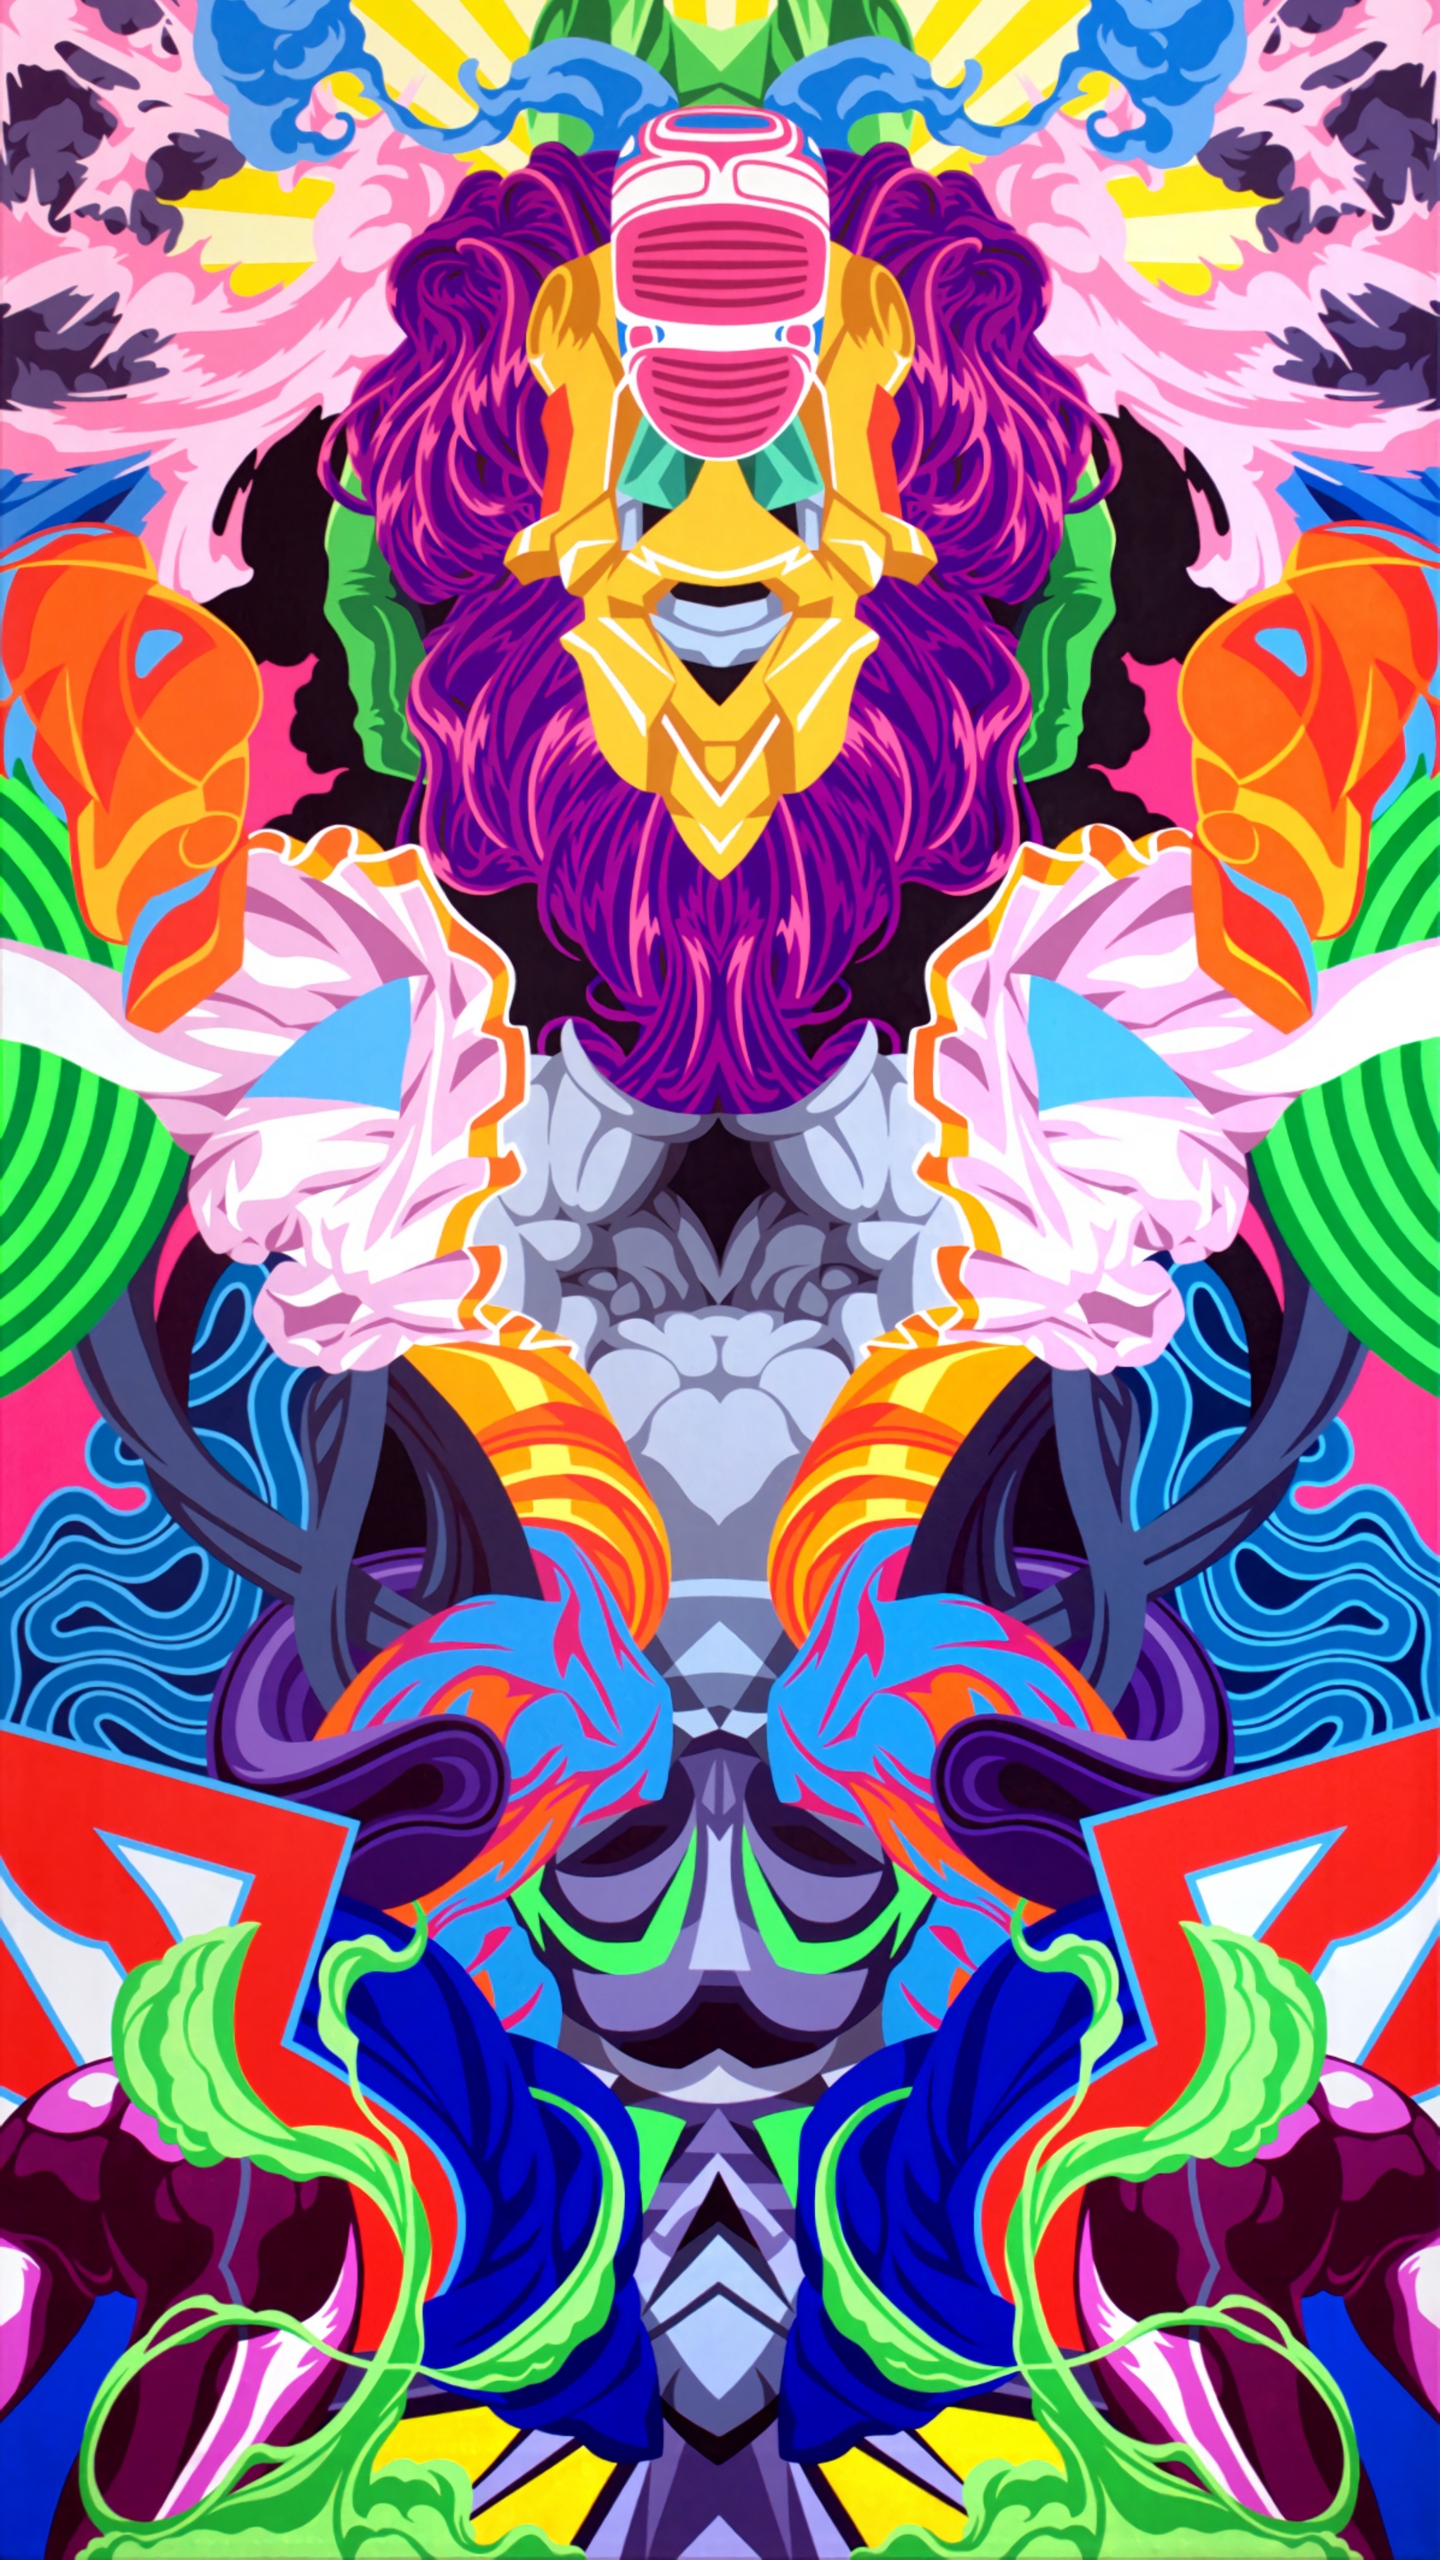 Wallpaper Patterns, Colorful, Abstract, Art - Psychedelic Wallpaper Iphone X - HD Wallpaper